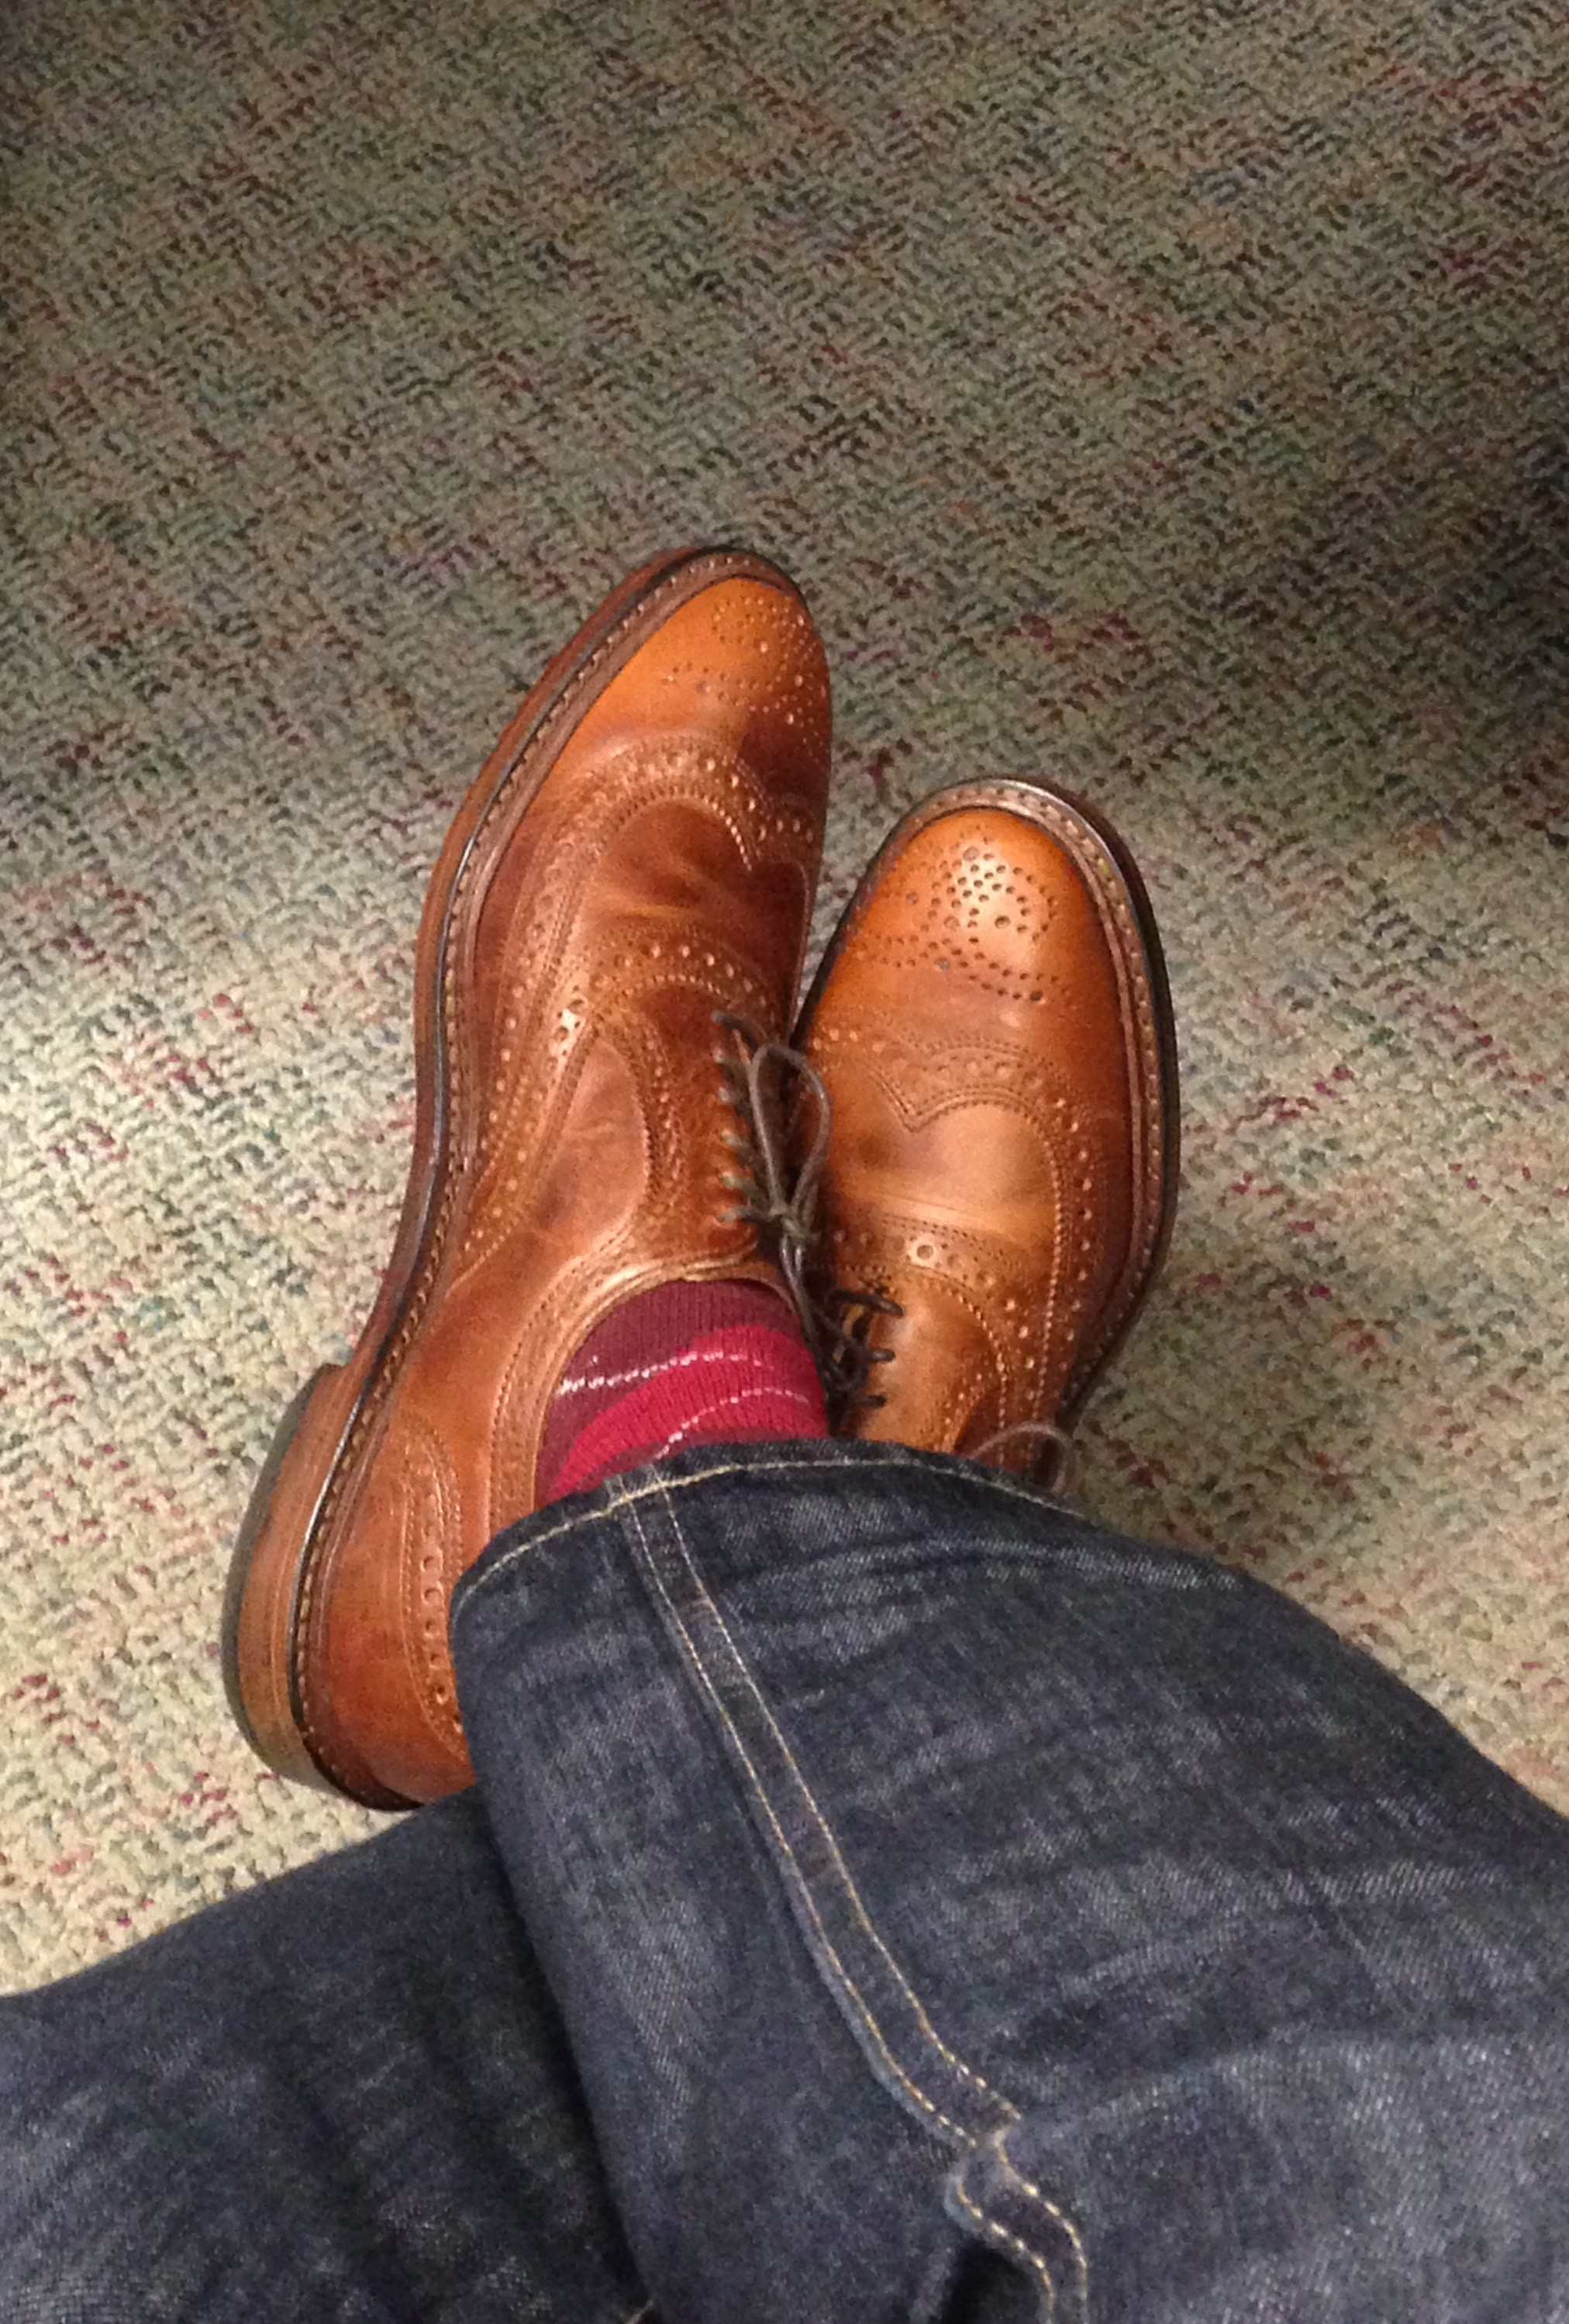 tradbrah's photos in Allen Edmonds Appreciation Thread 2016 - News, Pictures, Sizing, Accessories, Clothing, etc